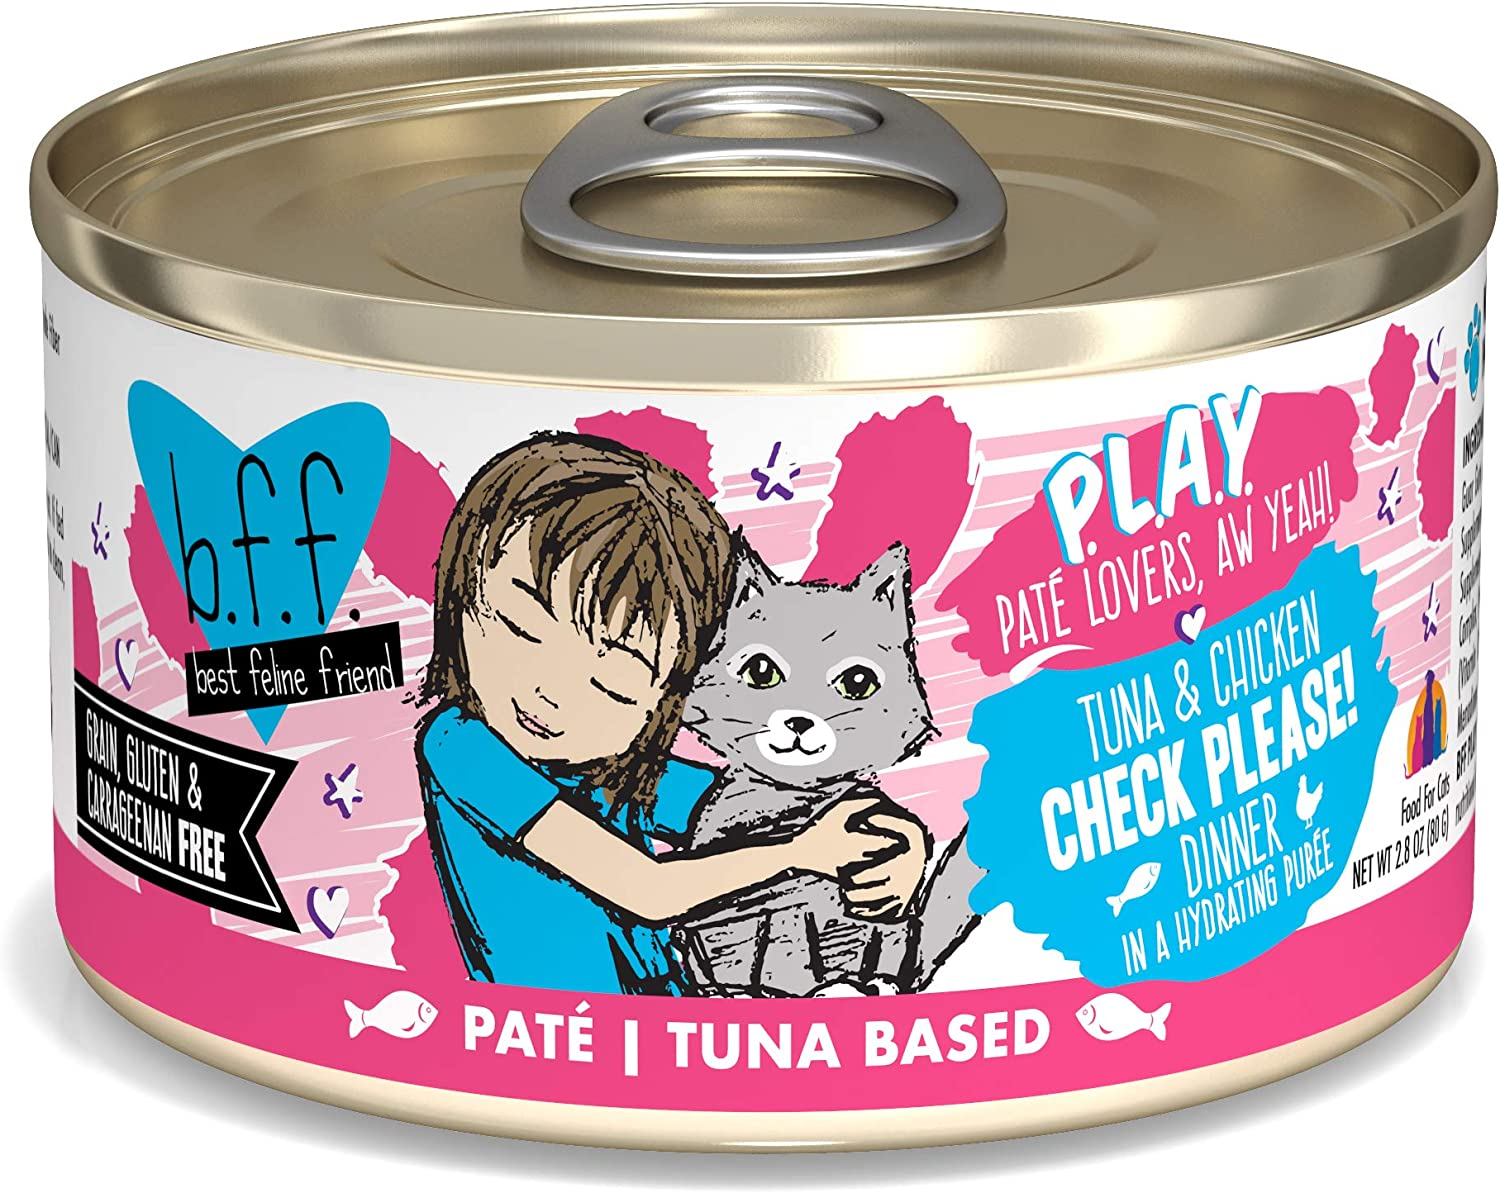 B.F.F. PLAY - Best Feline Friend Pate Lovers aw Yeah! Grain-Free Natural Wet Cat Food Cans, Tuna Pate Recipes